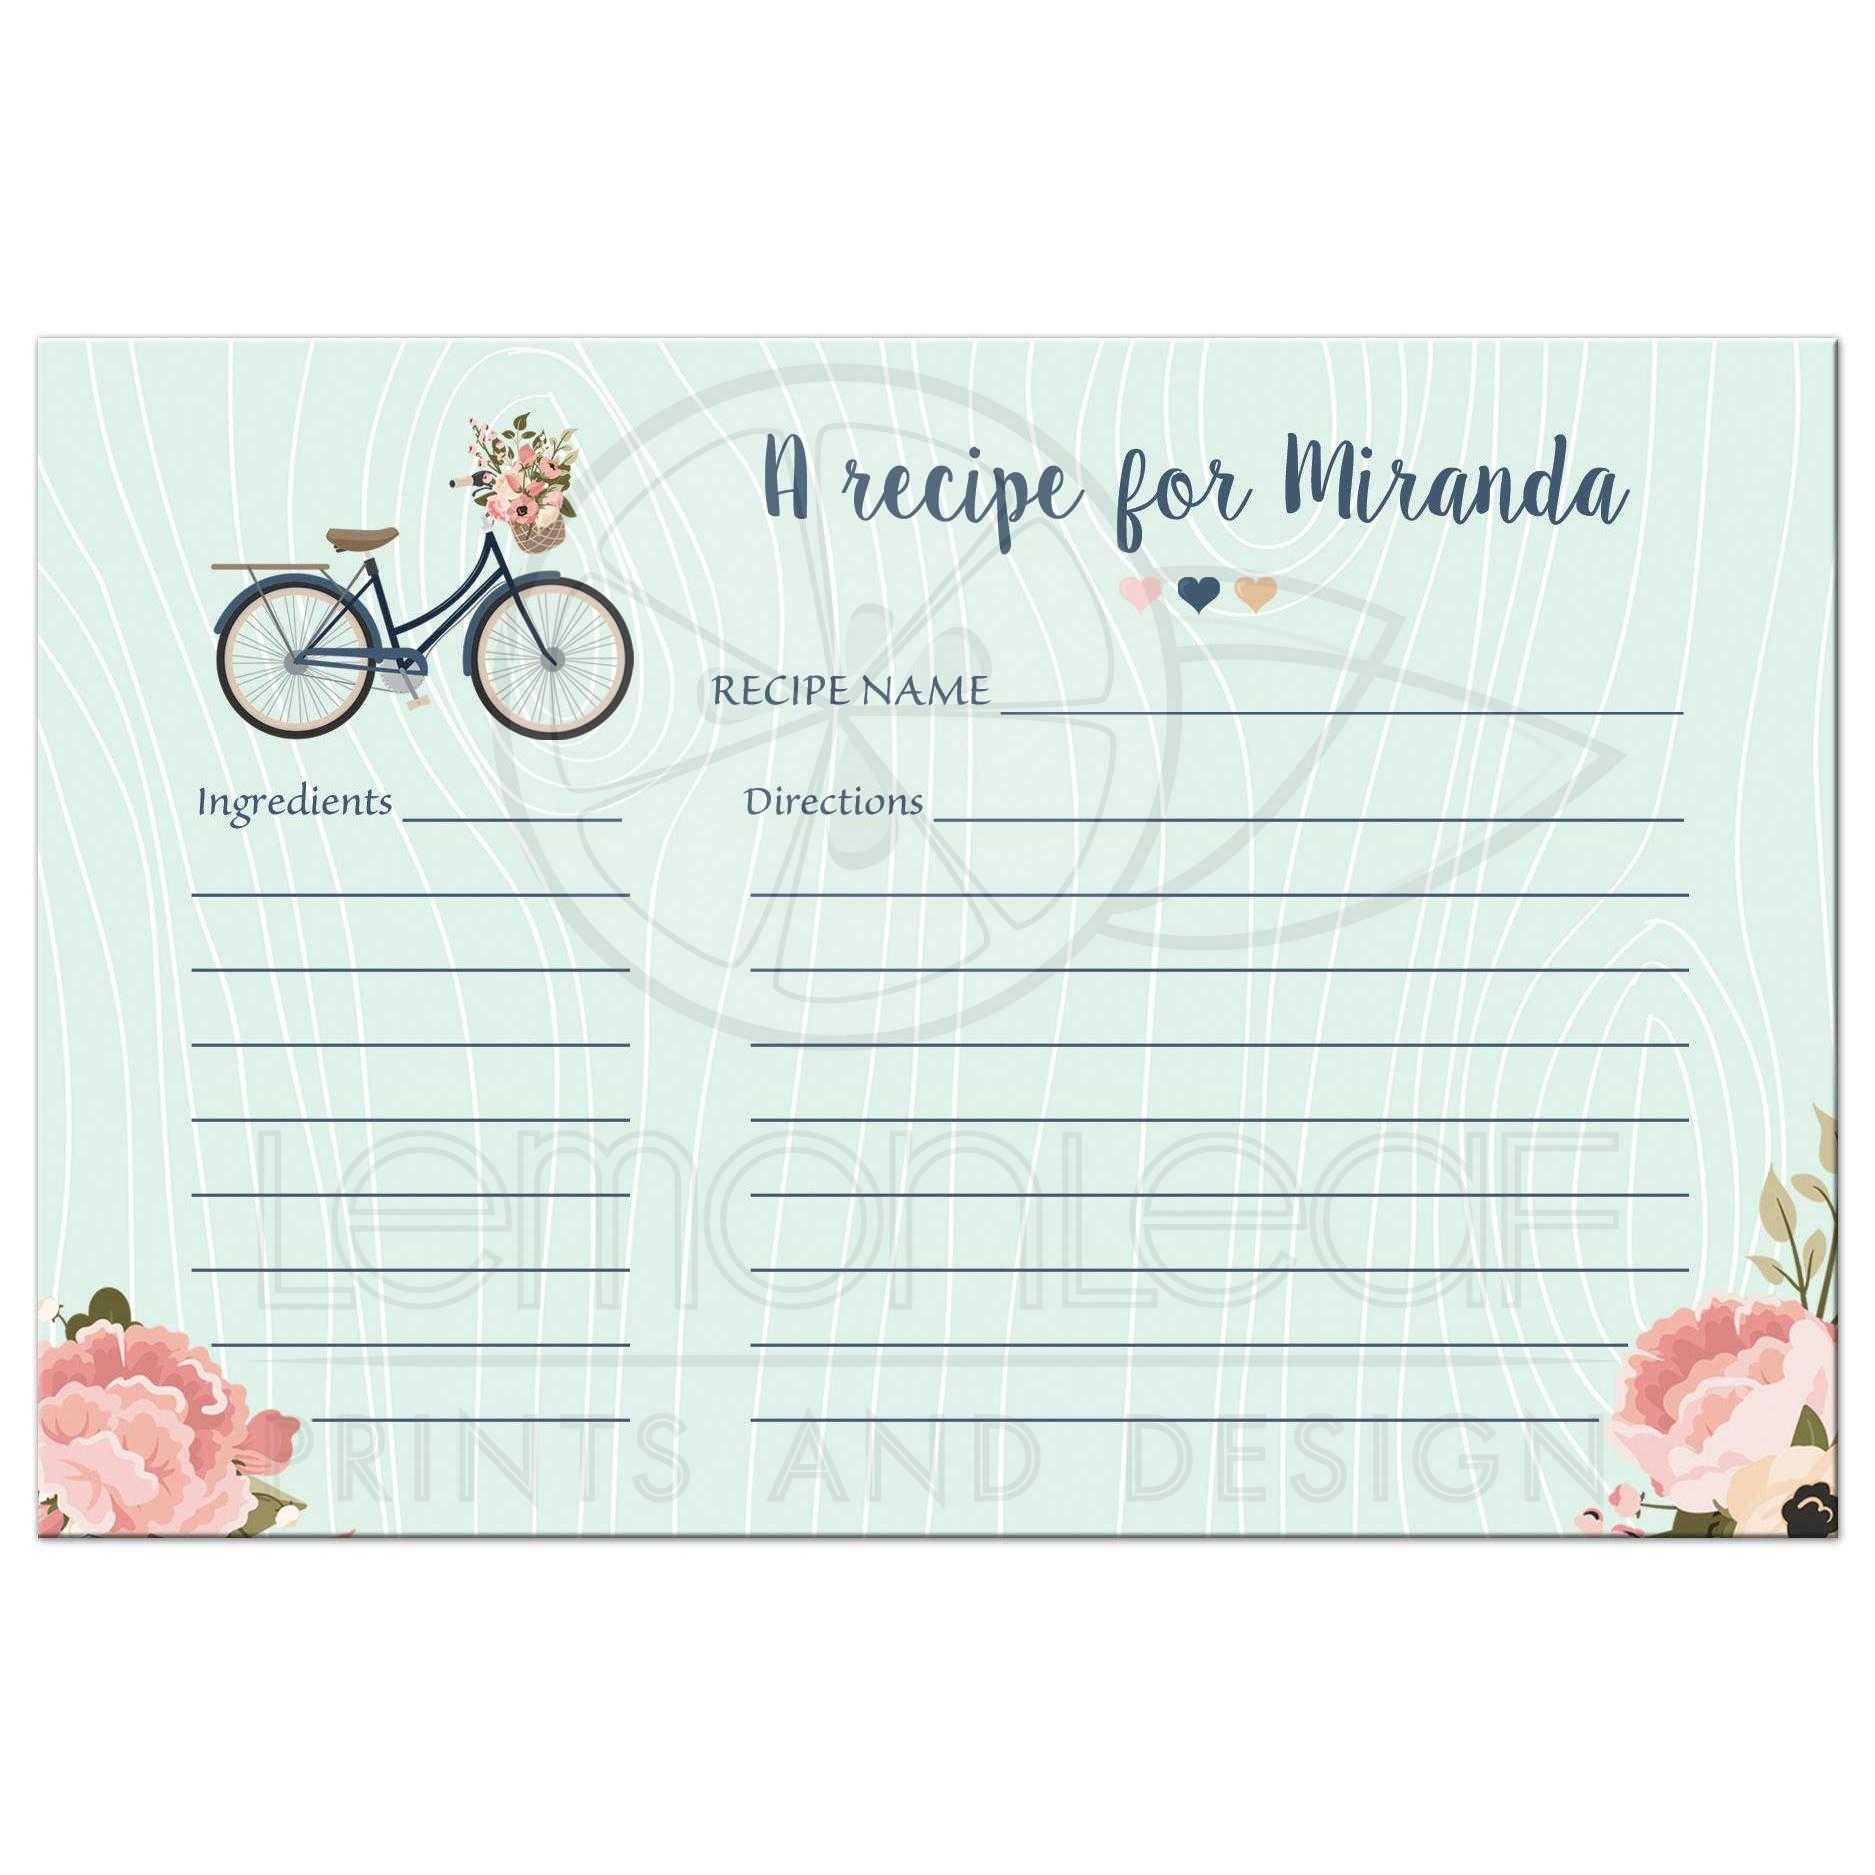 image regarding Free Printable Recipe Cards for Bridal Shower called Bridal Shower Recipe Card - Blush and Armed forces Floral Bicycle